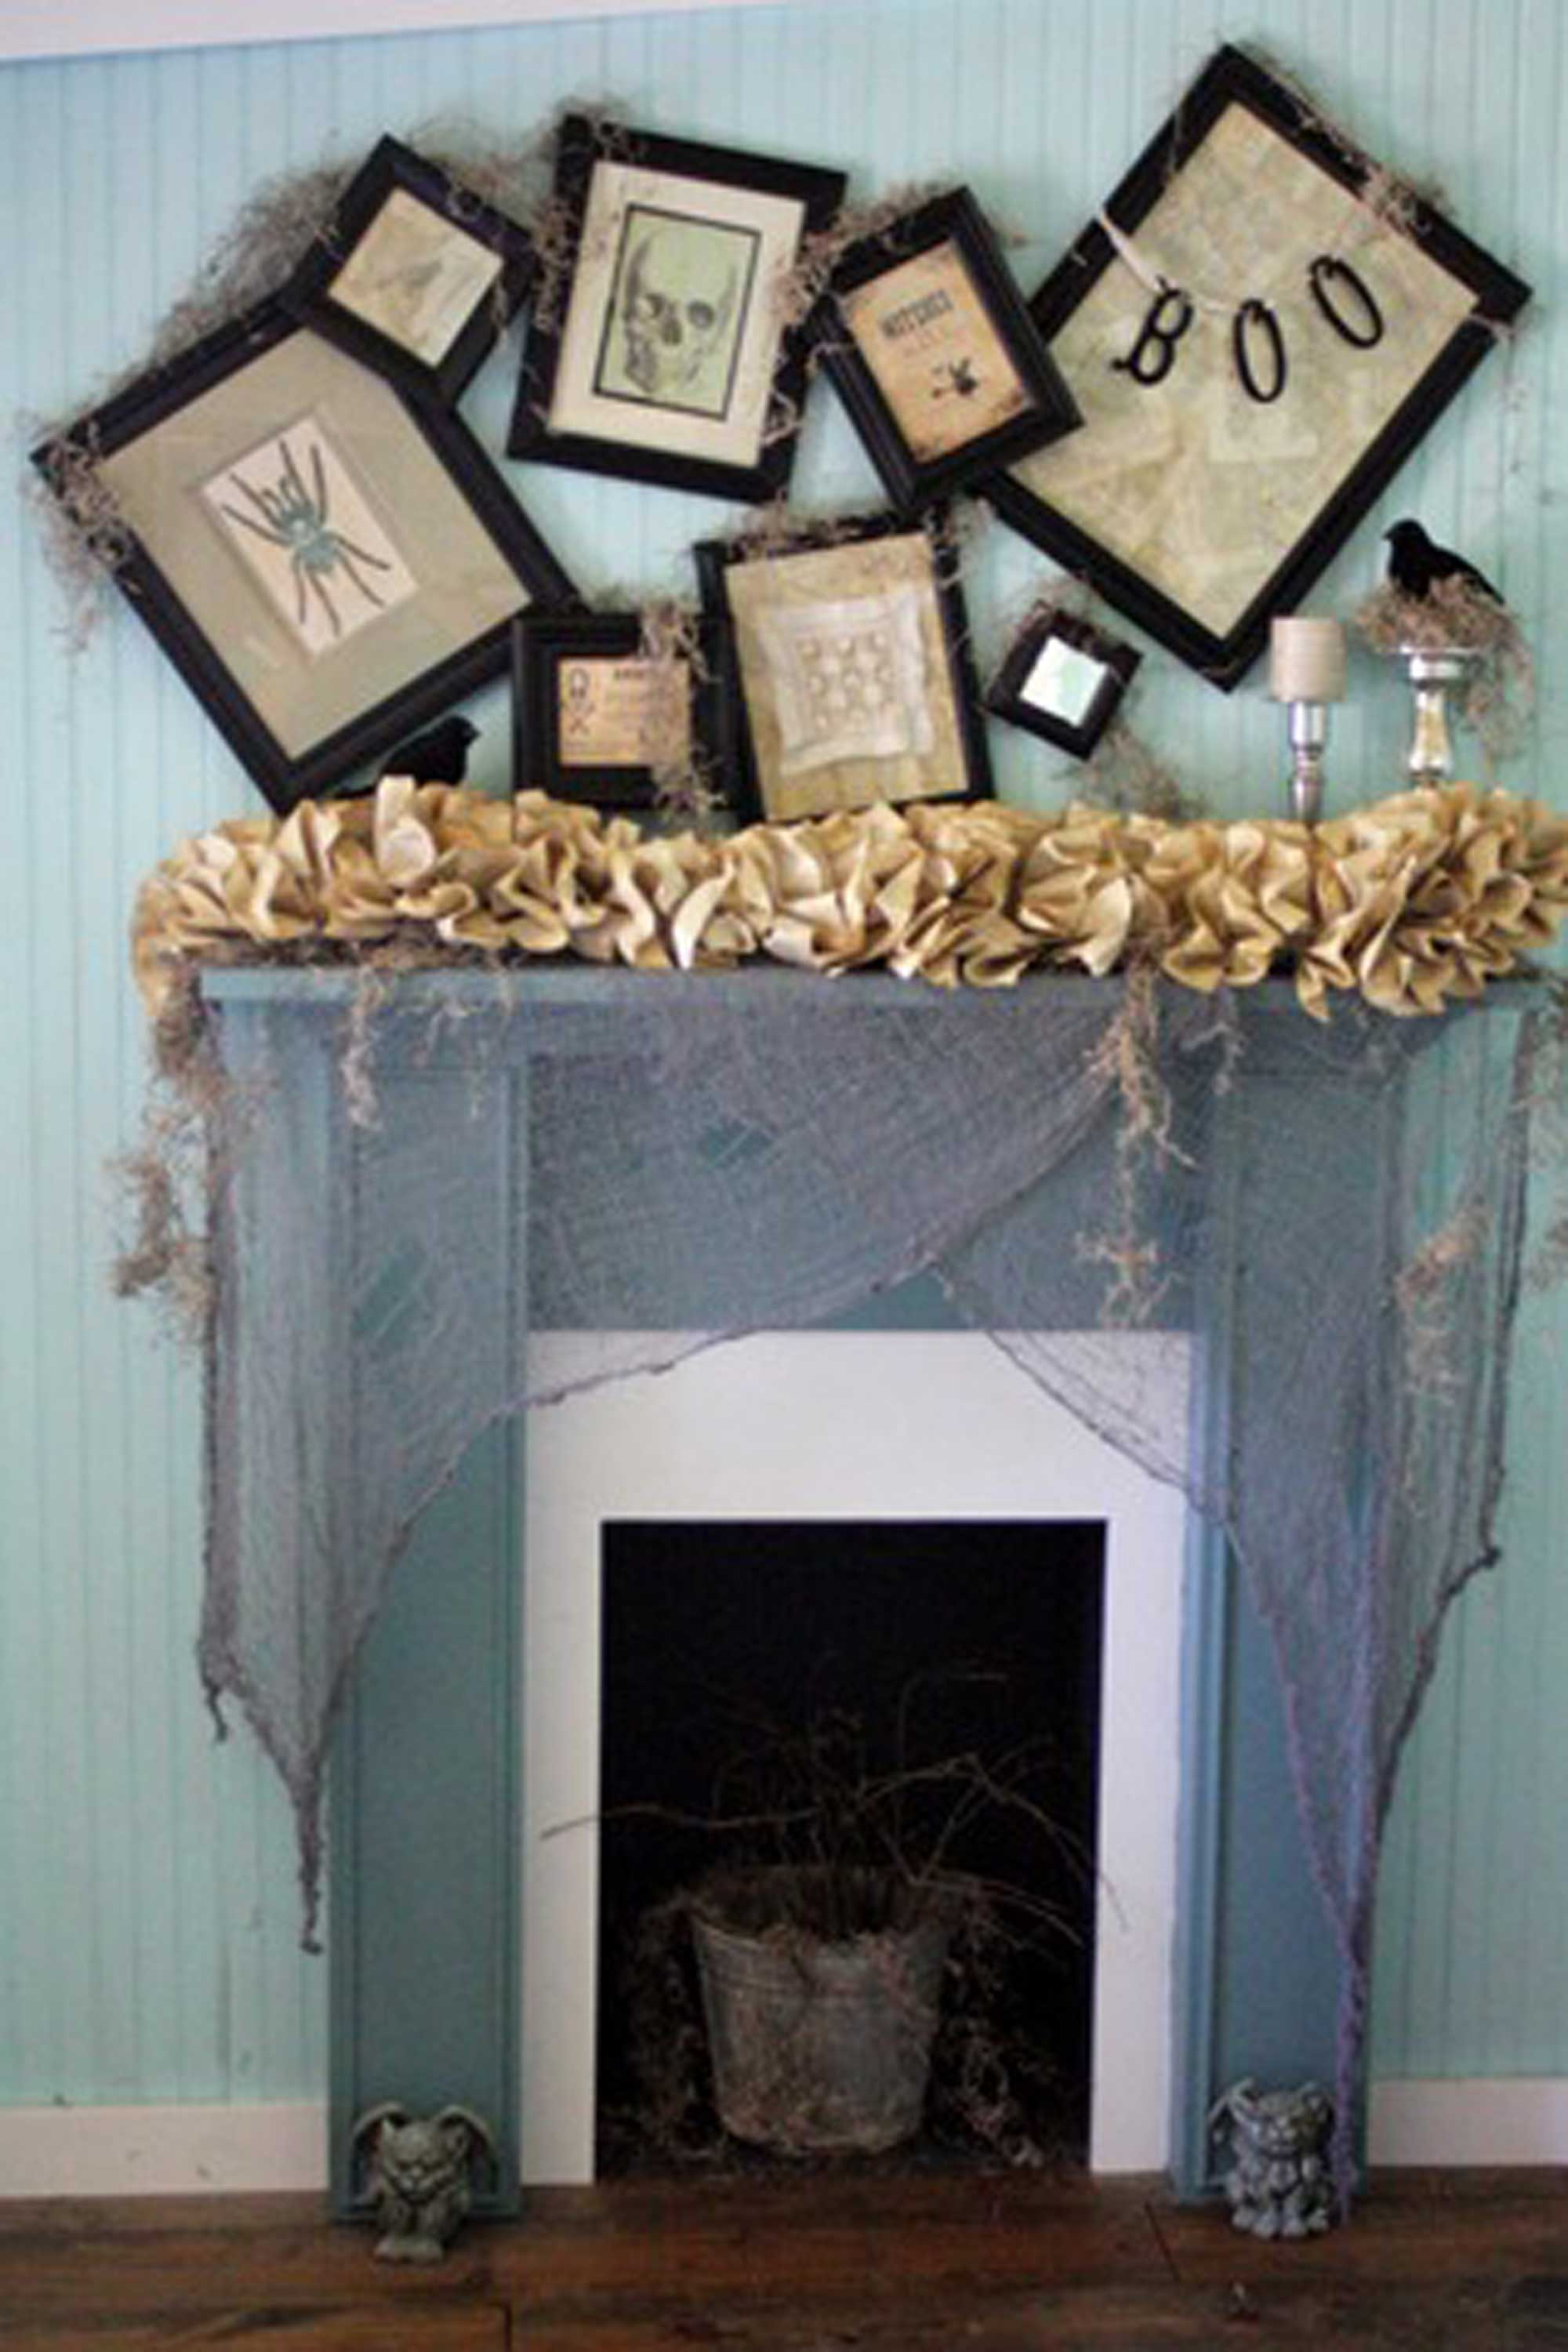 35 fall mantel decorating ideas halloween mantel decorations - Halloween Home Ideas